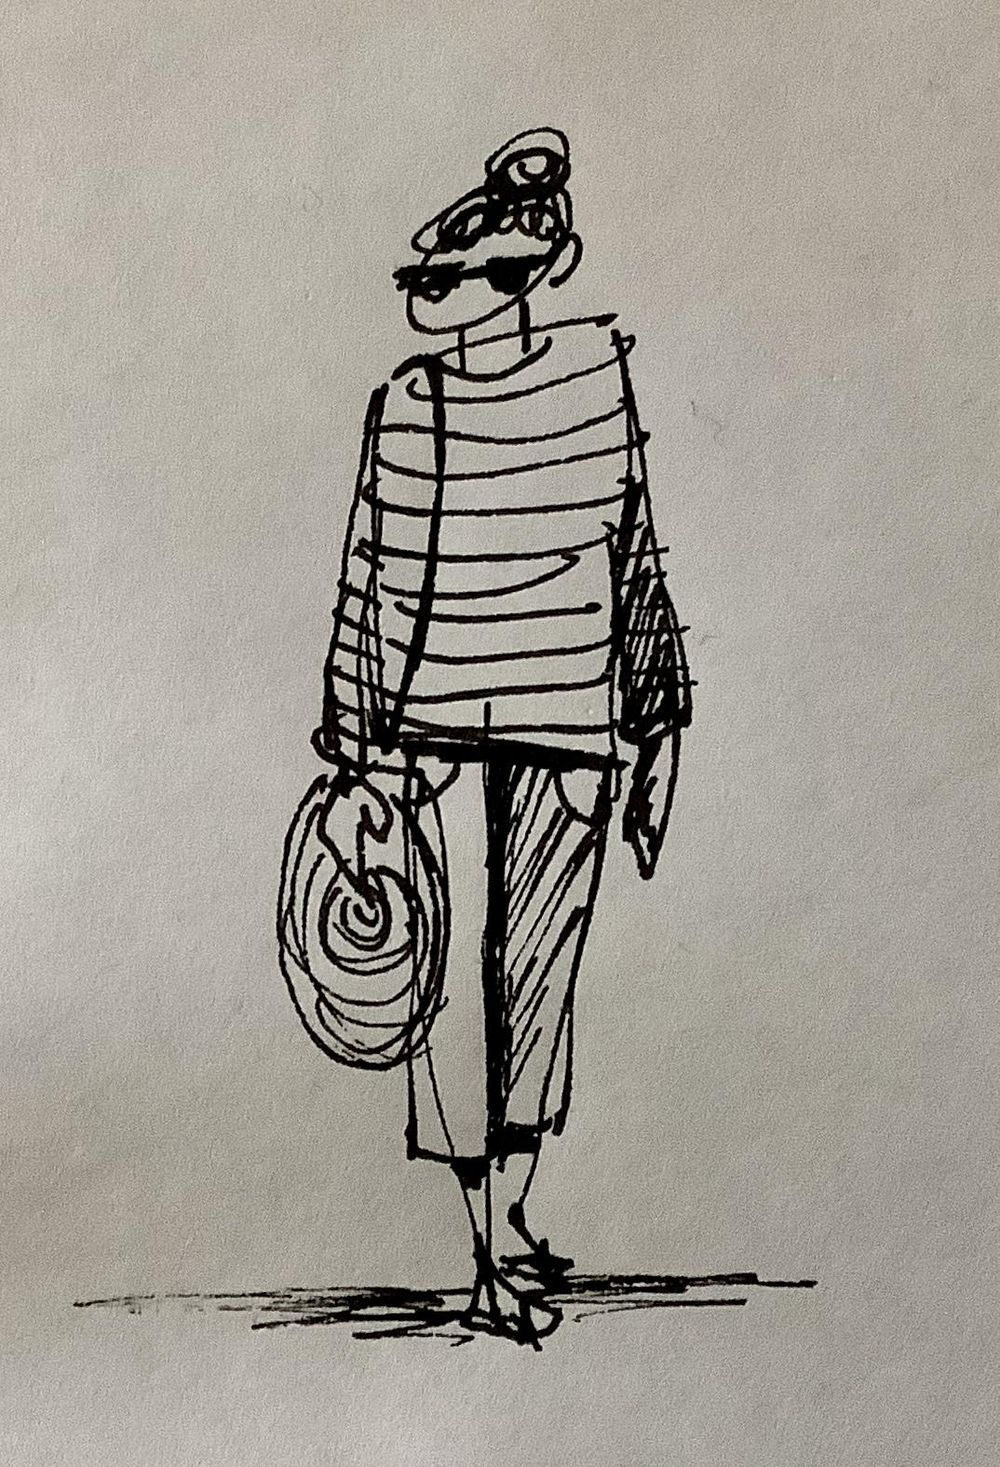 Urban sketching: Drawing people - image 1 - student project